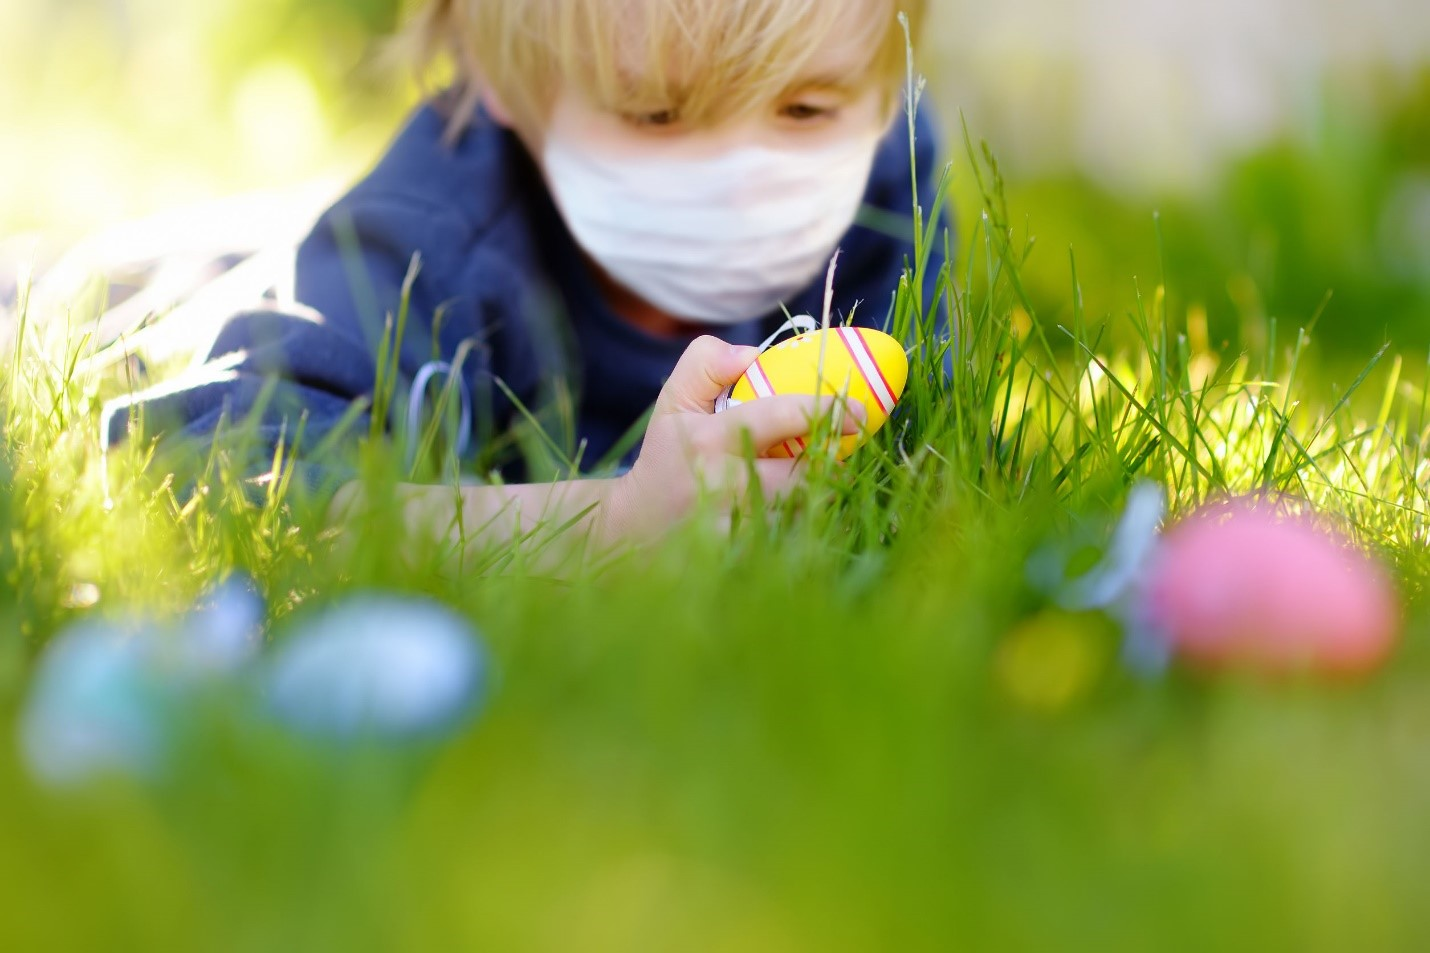 Ideas for hosting a fun and safe Easter event